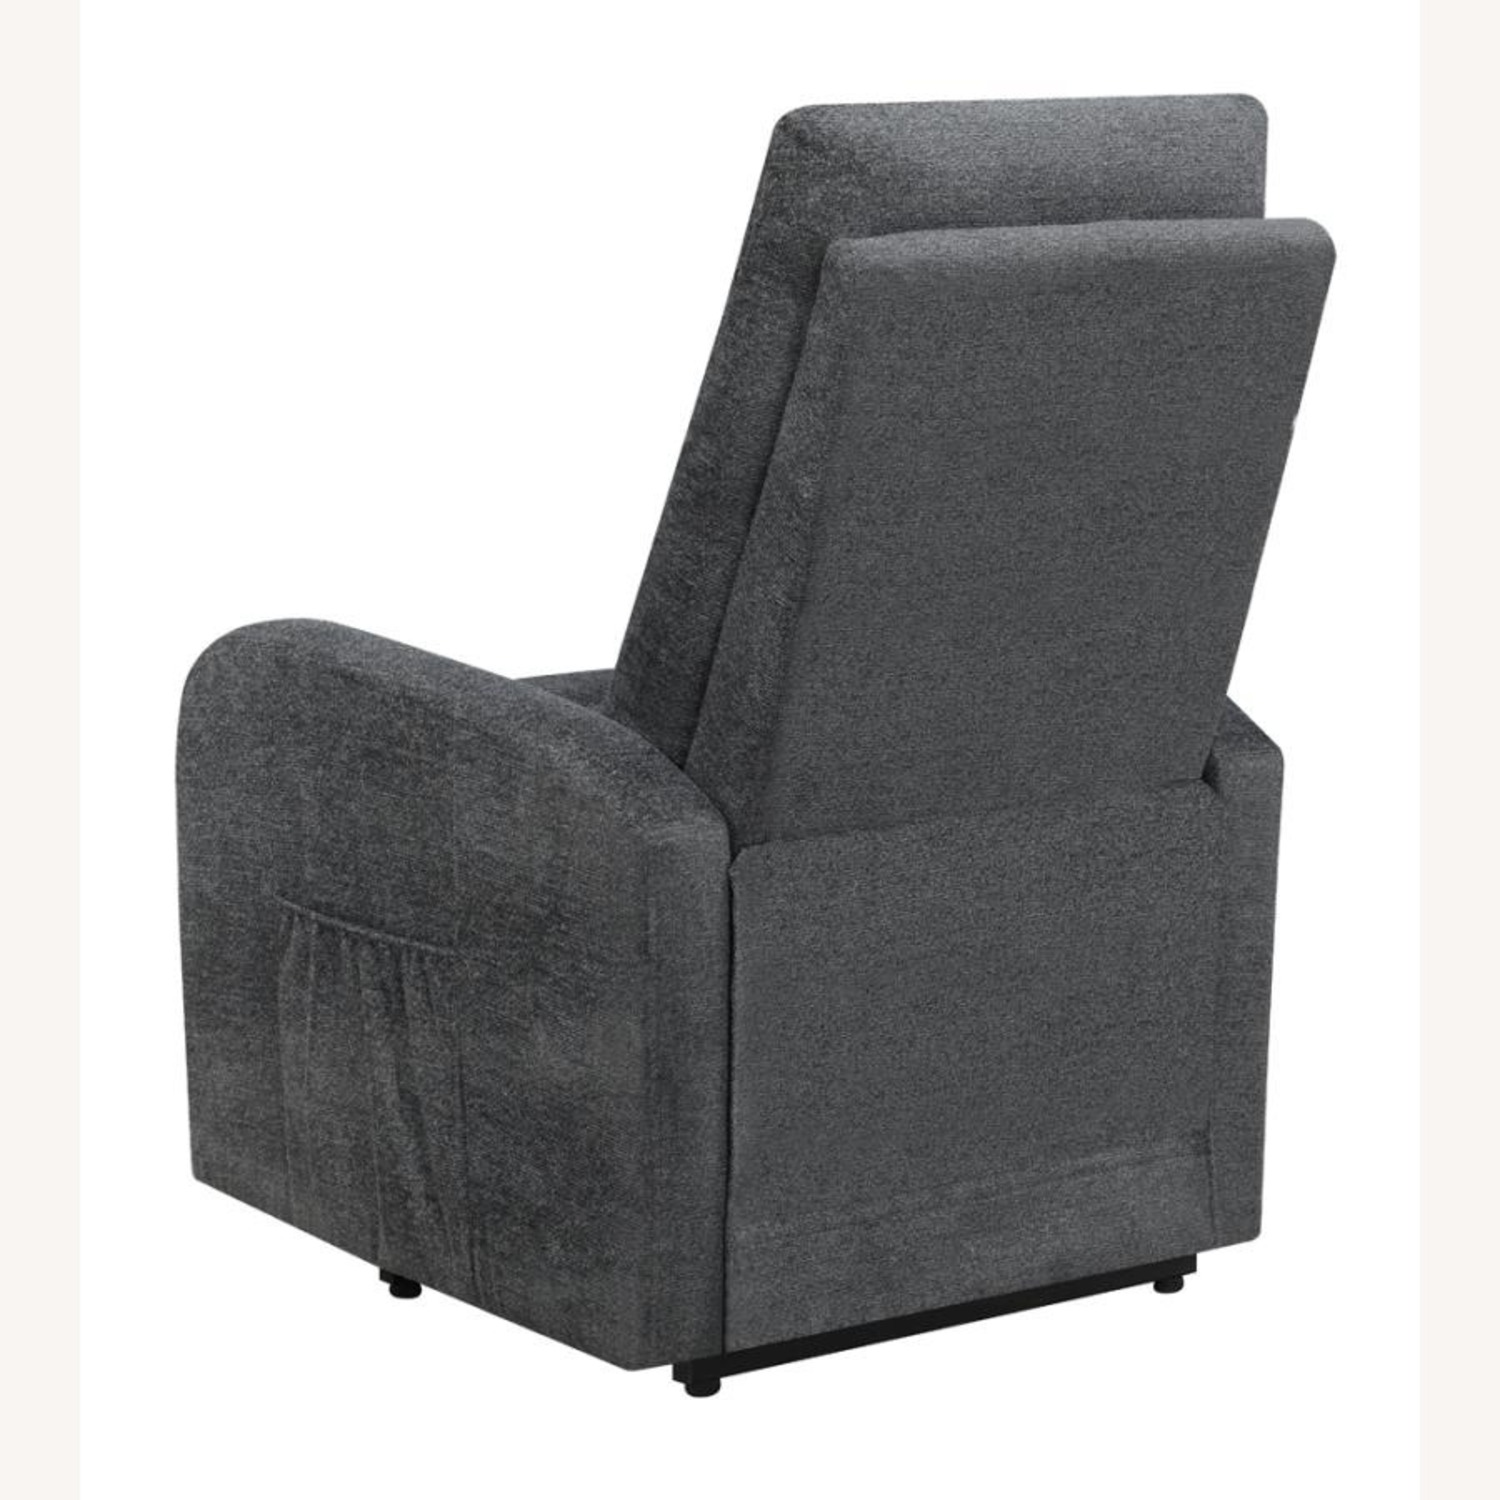 Power Lift Massage Chair In Charcoal Fabric - image-4